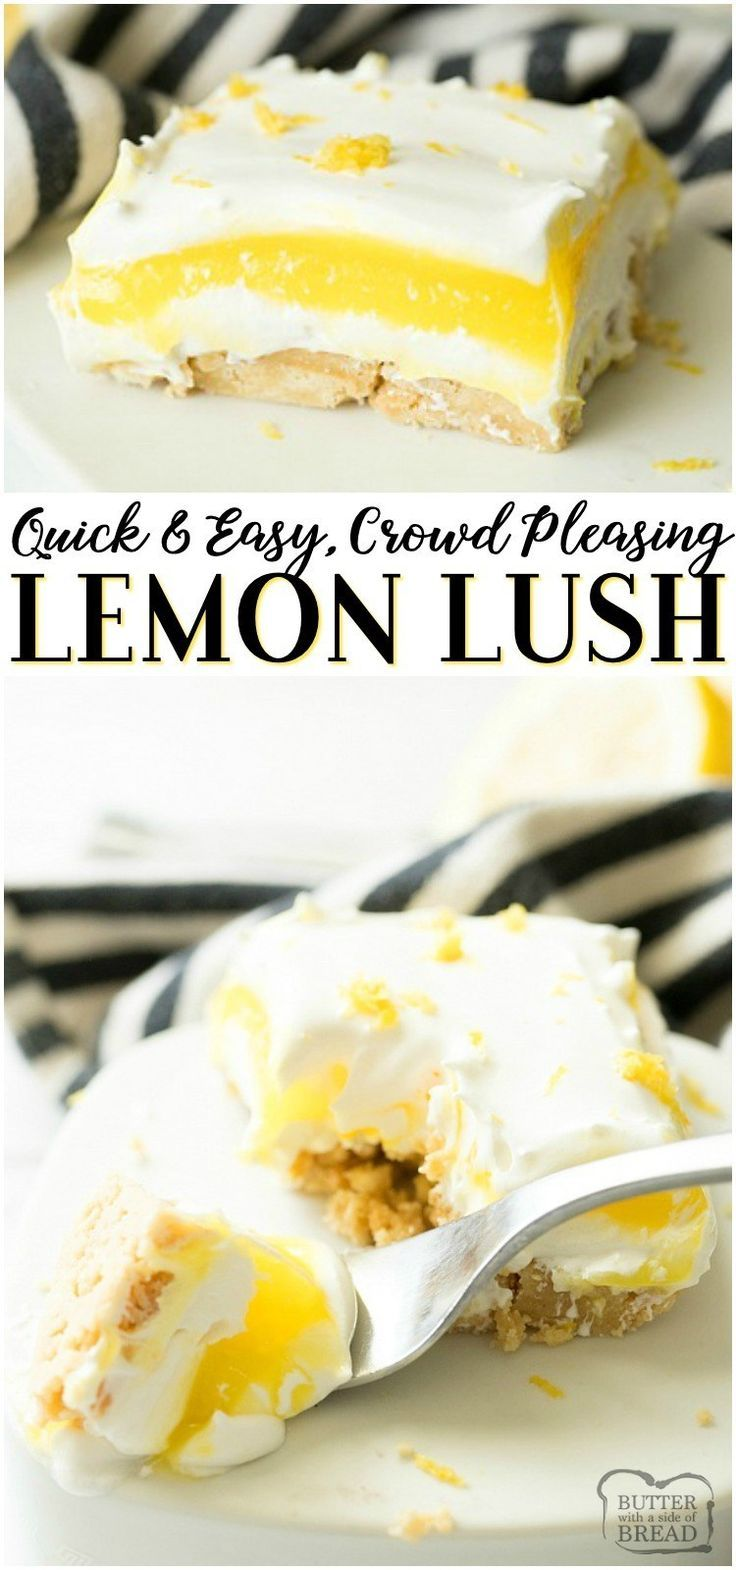 17 lemon desserts Fancy ideas